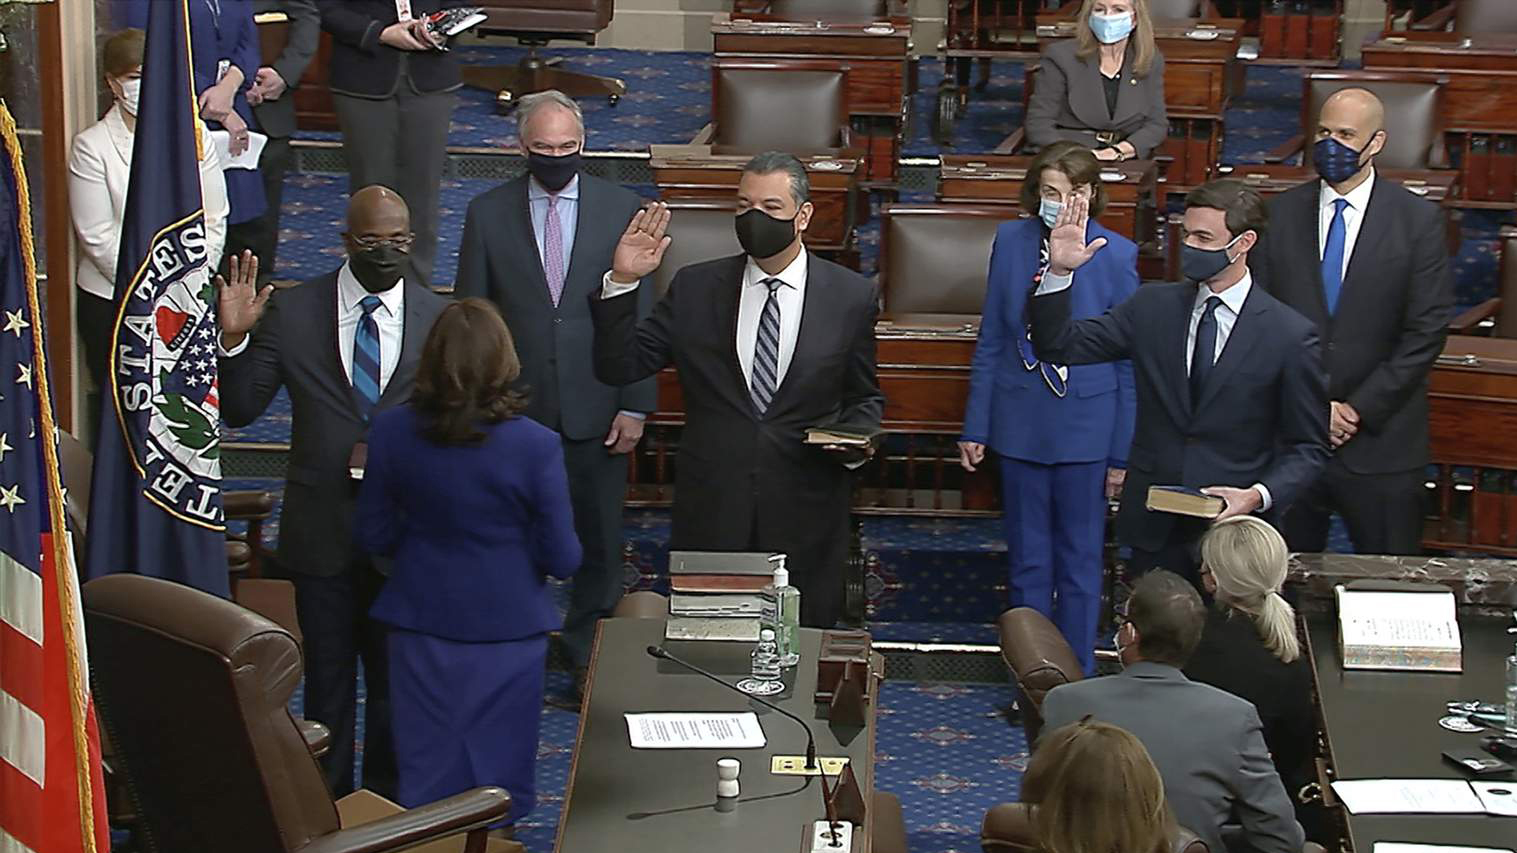 The Rev. Raphael Warnock sworn in with two others as new senator